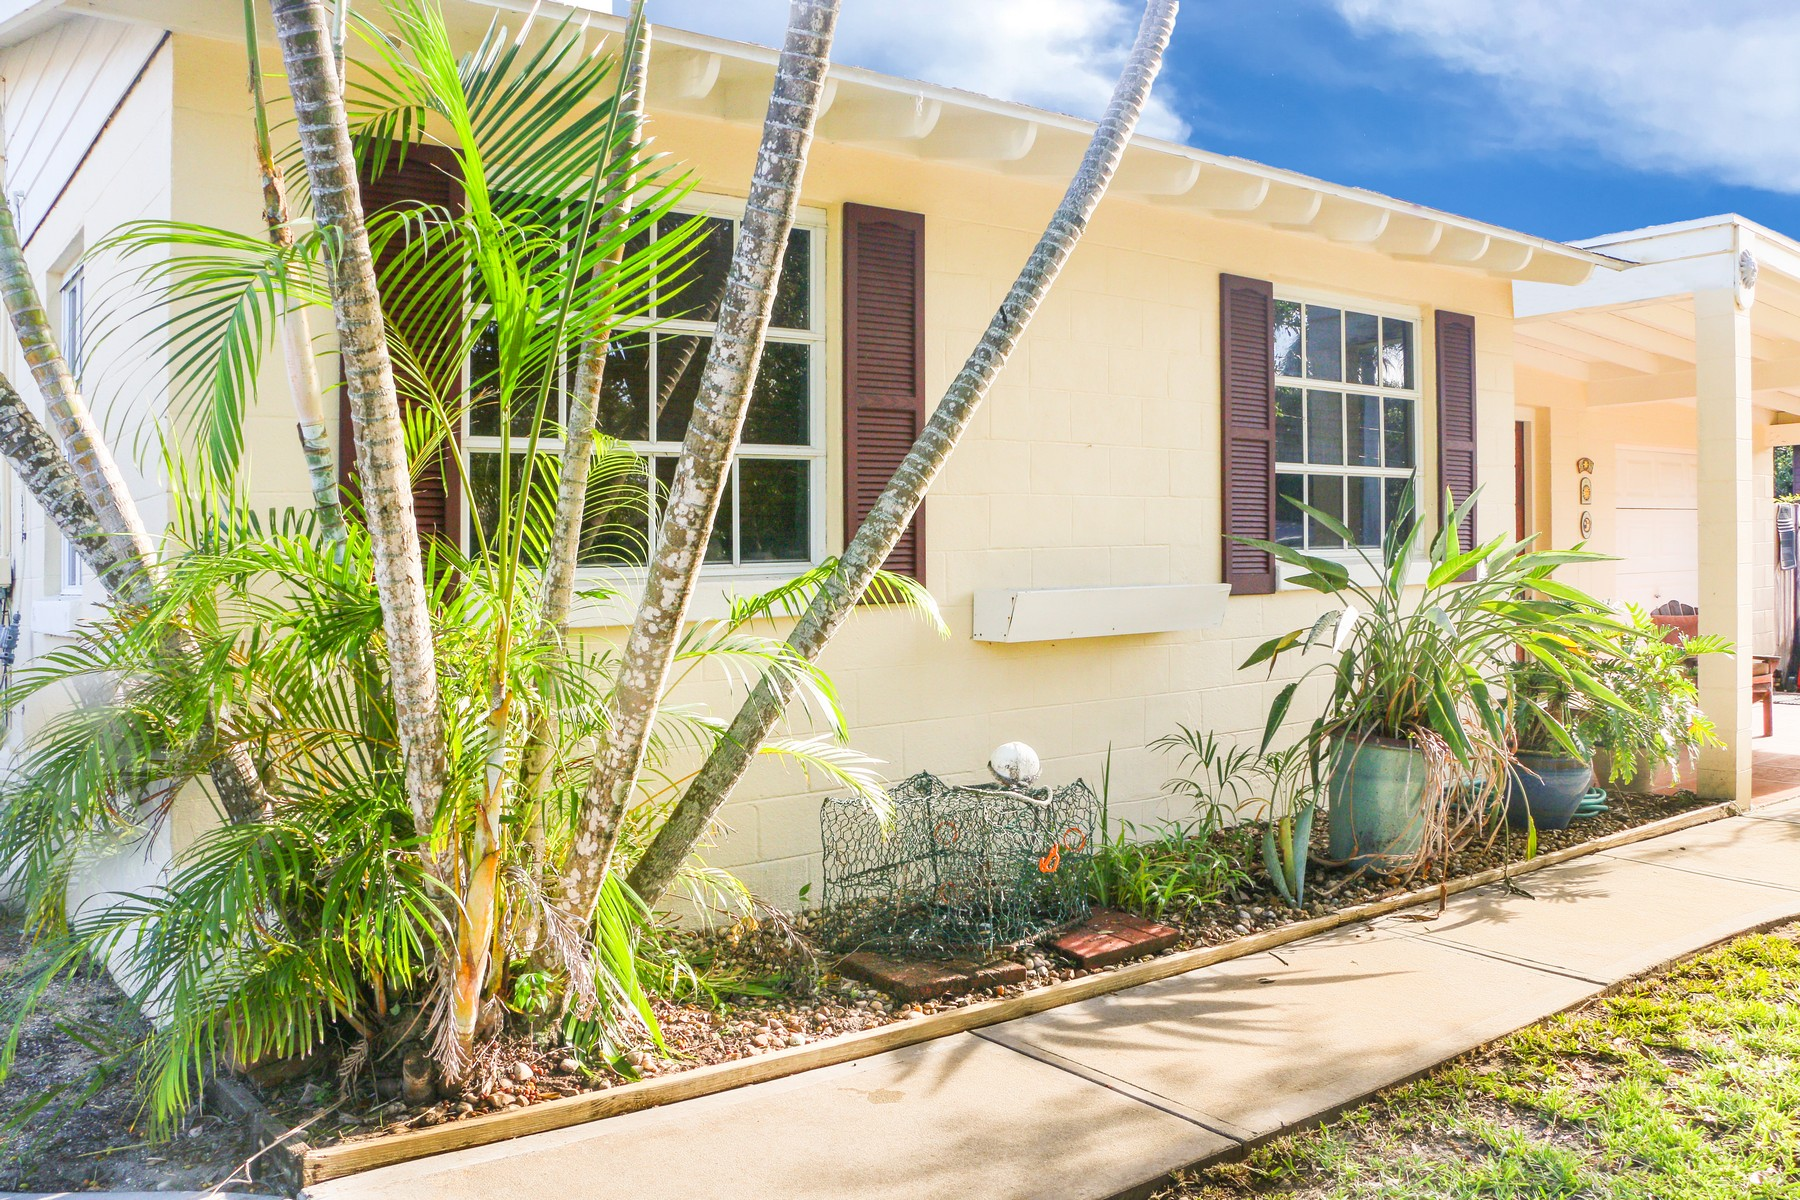 Single Family Home for Sale at Charming Home in Floridana Beach 129 Delespine Street Melbourne Beach, Florida 32951 United States